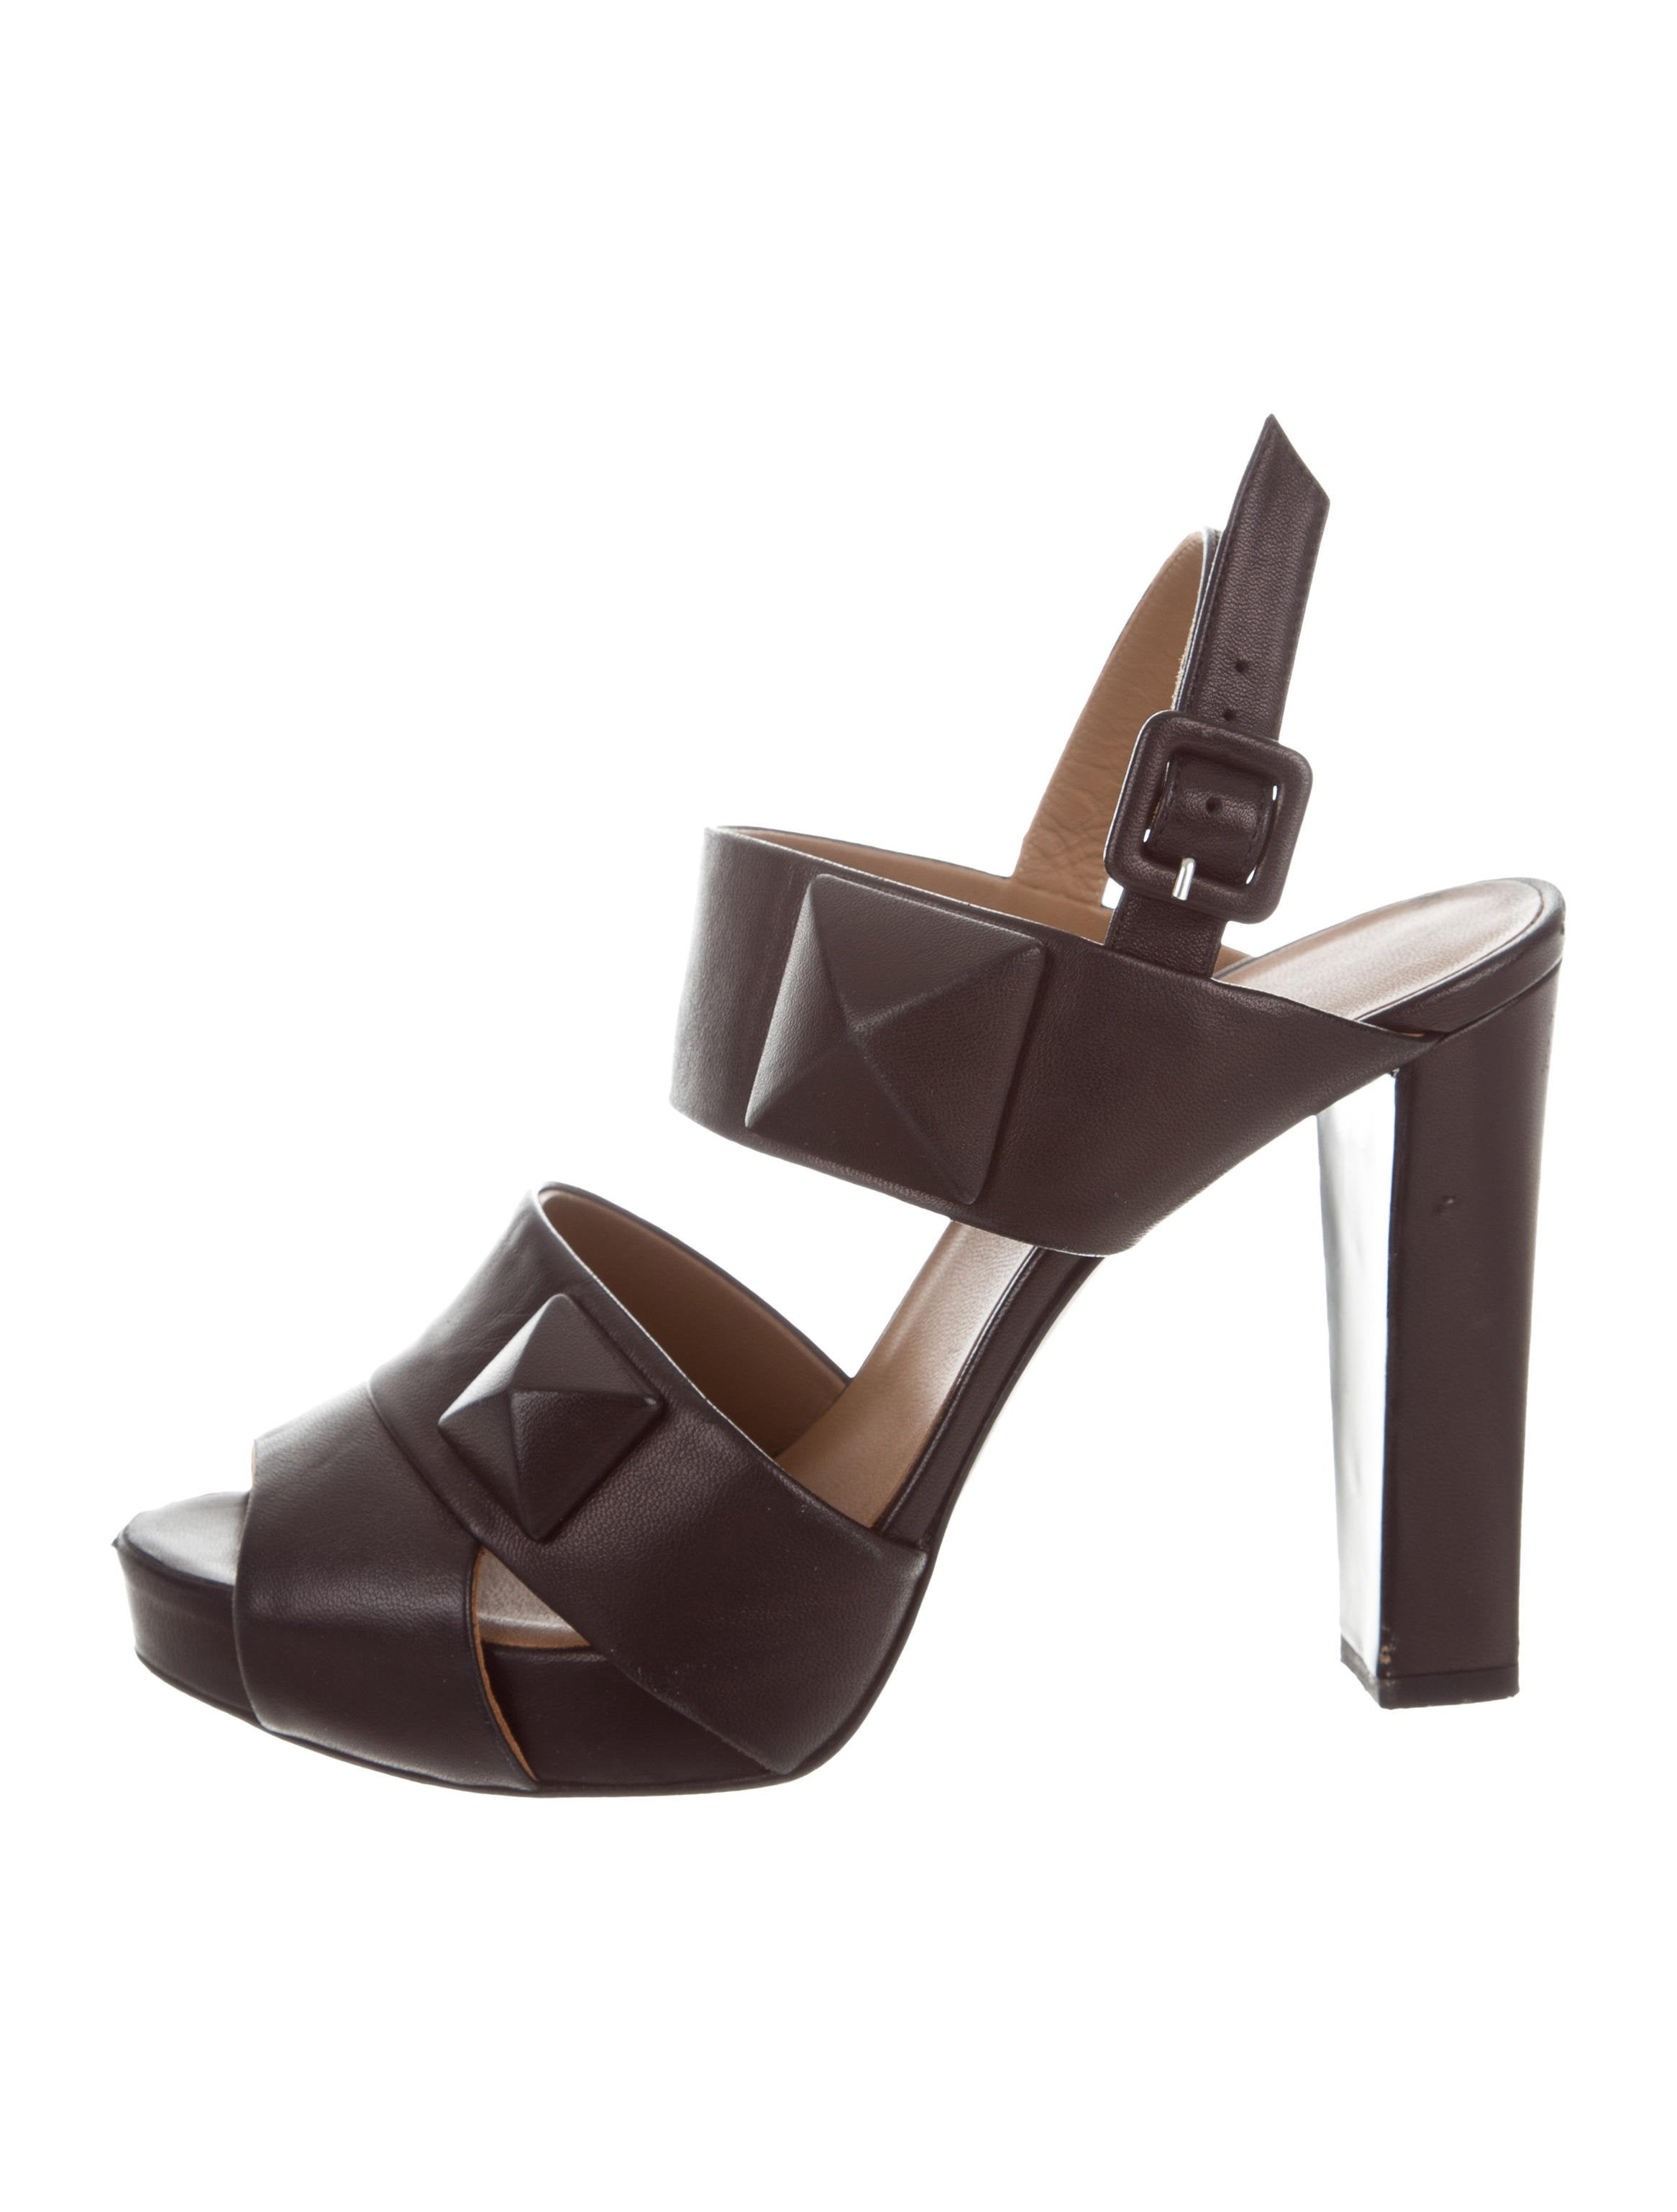 Hermès Leather Studded Sandals clearance eastbay under $60 for sale get to buy VZY418SXBg